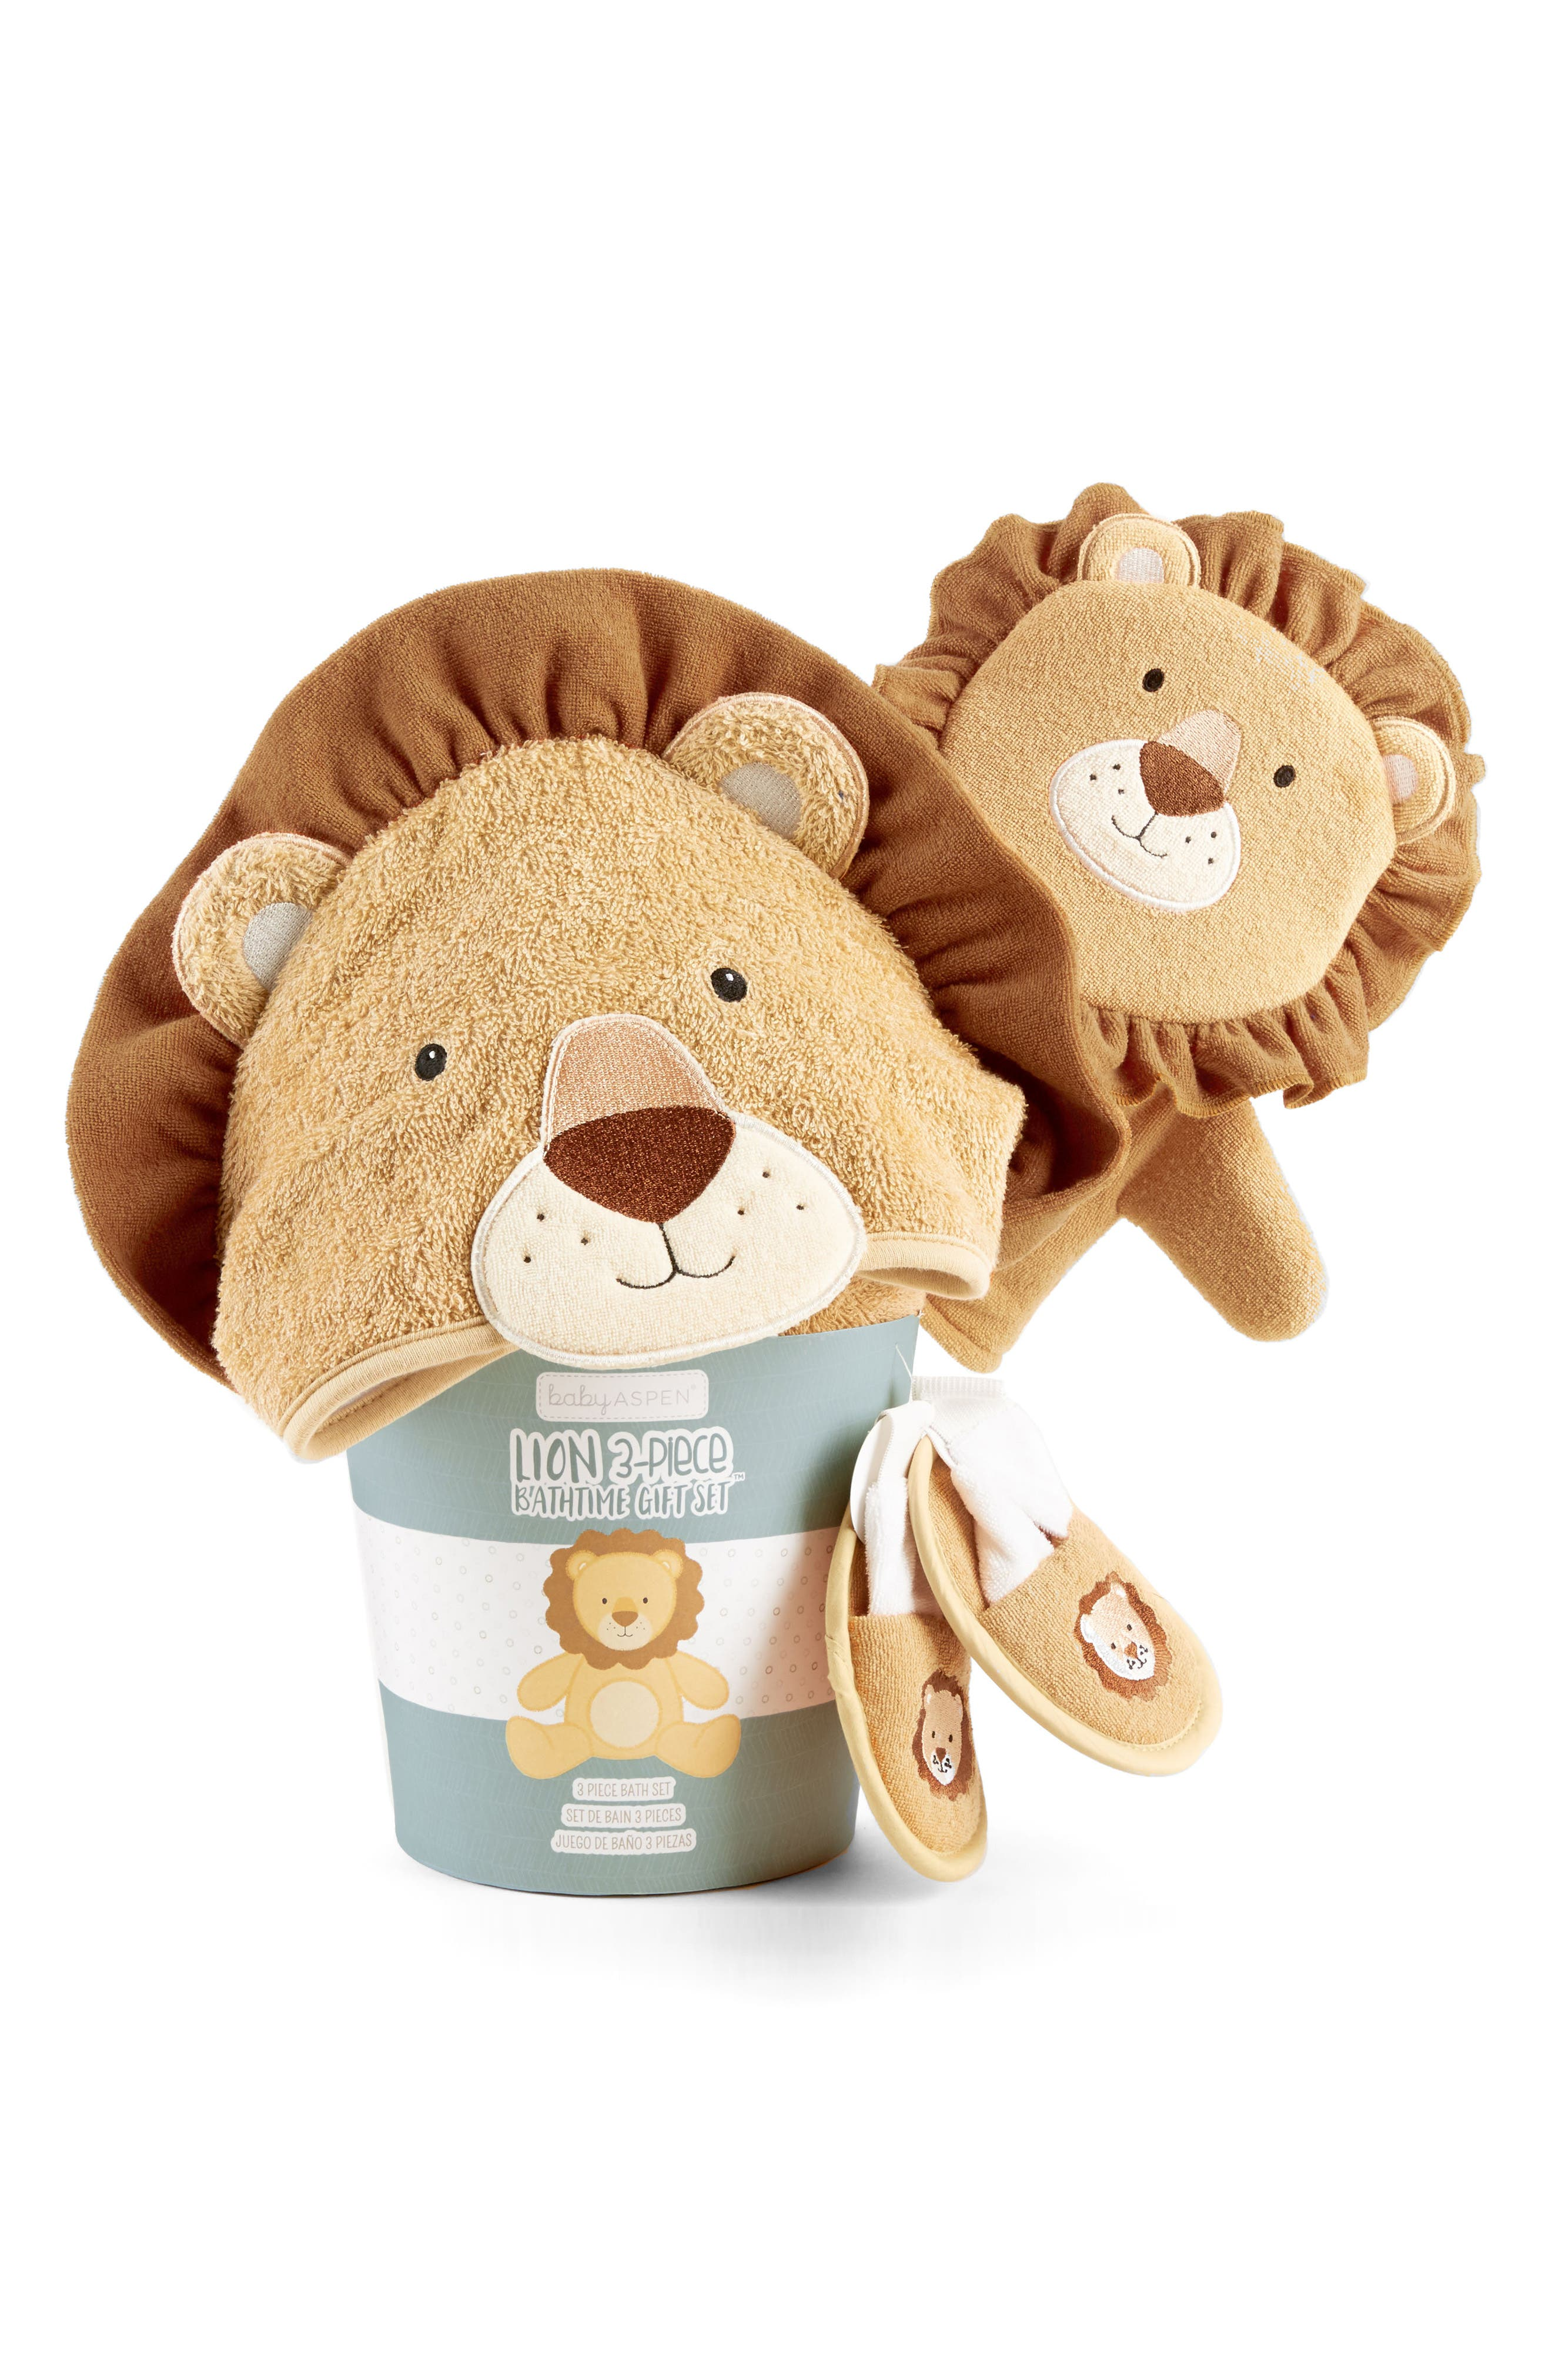 Lion Hooded Robe, Bath Mitt & Slippers Set,                         Main,                         color, TAN, BROWN AND BEIGE